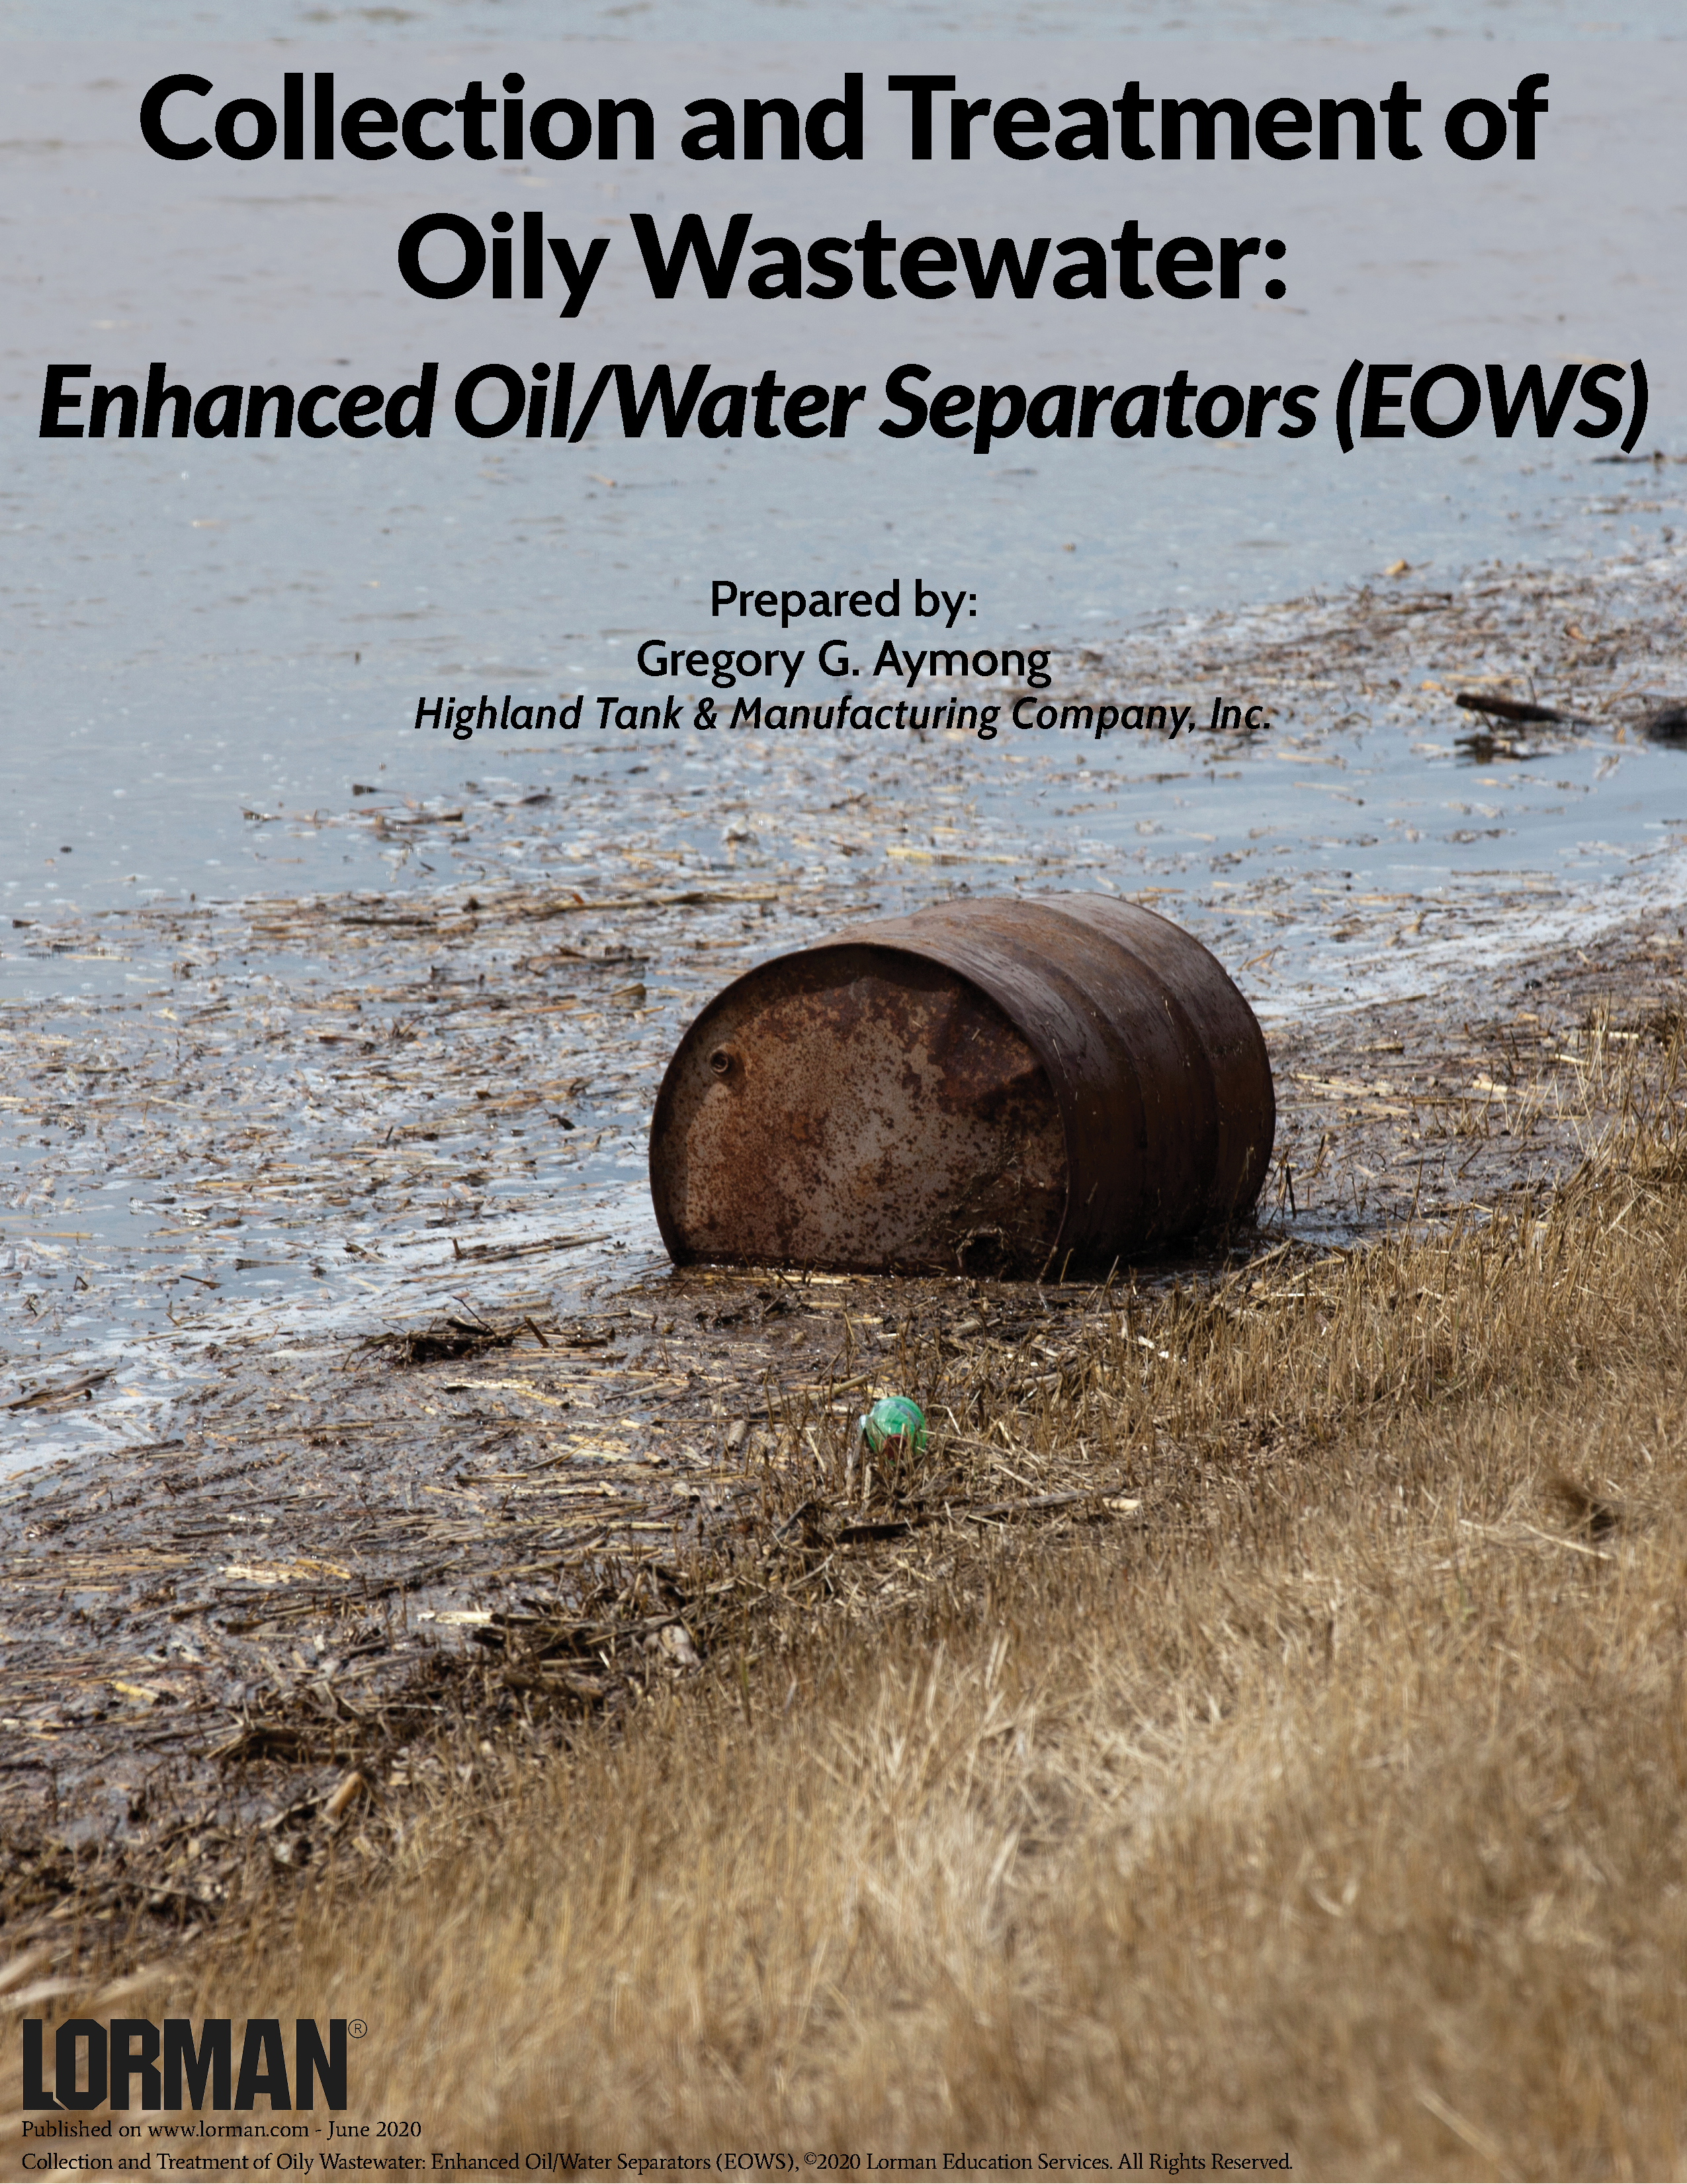 Collection and Treatment of Oily Wastewater - Enhanced Oil/Water Separators